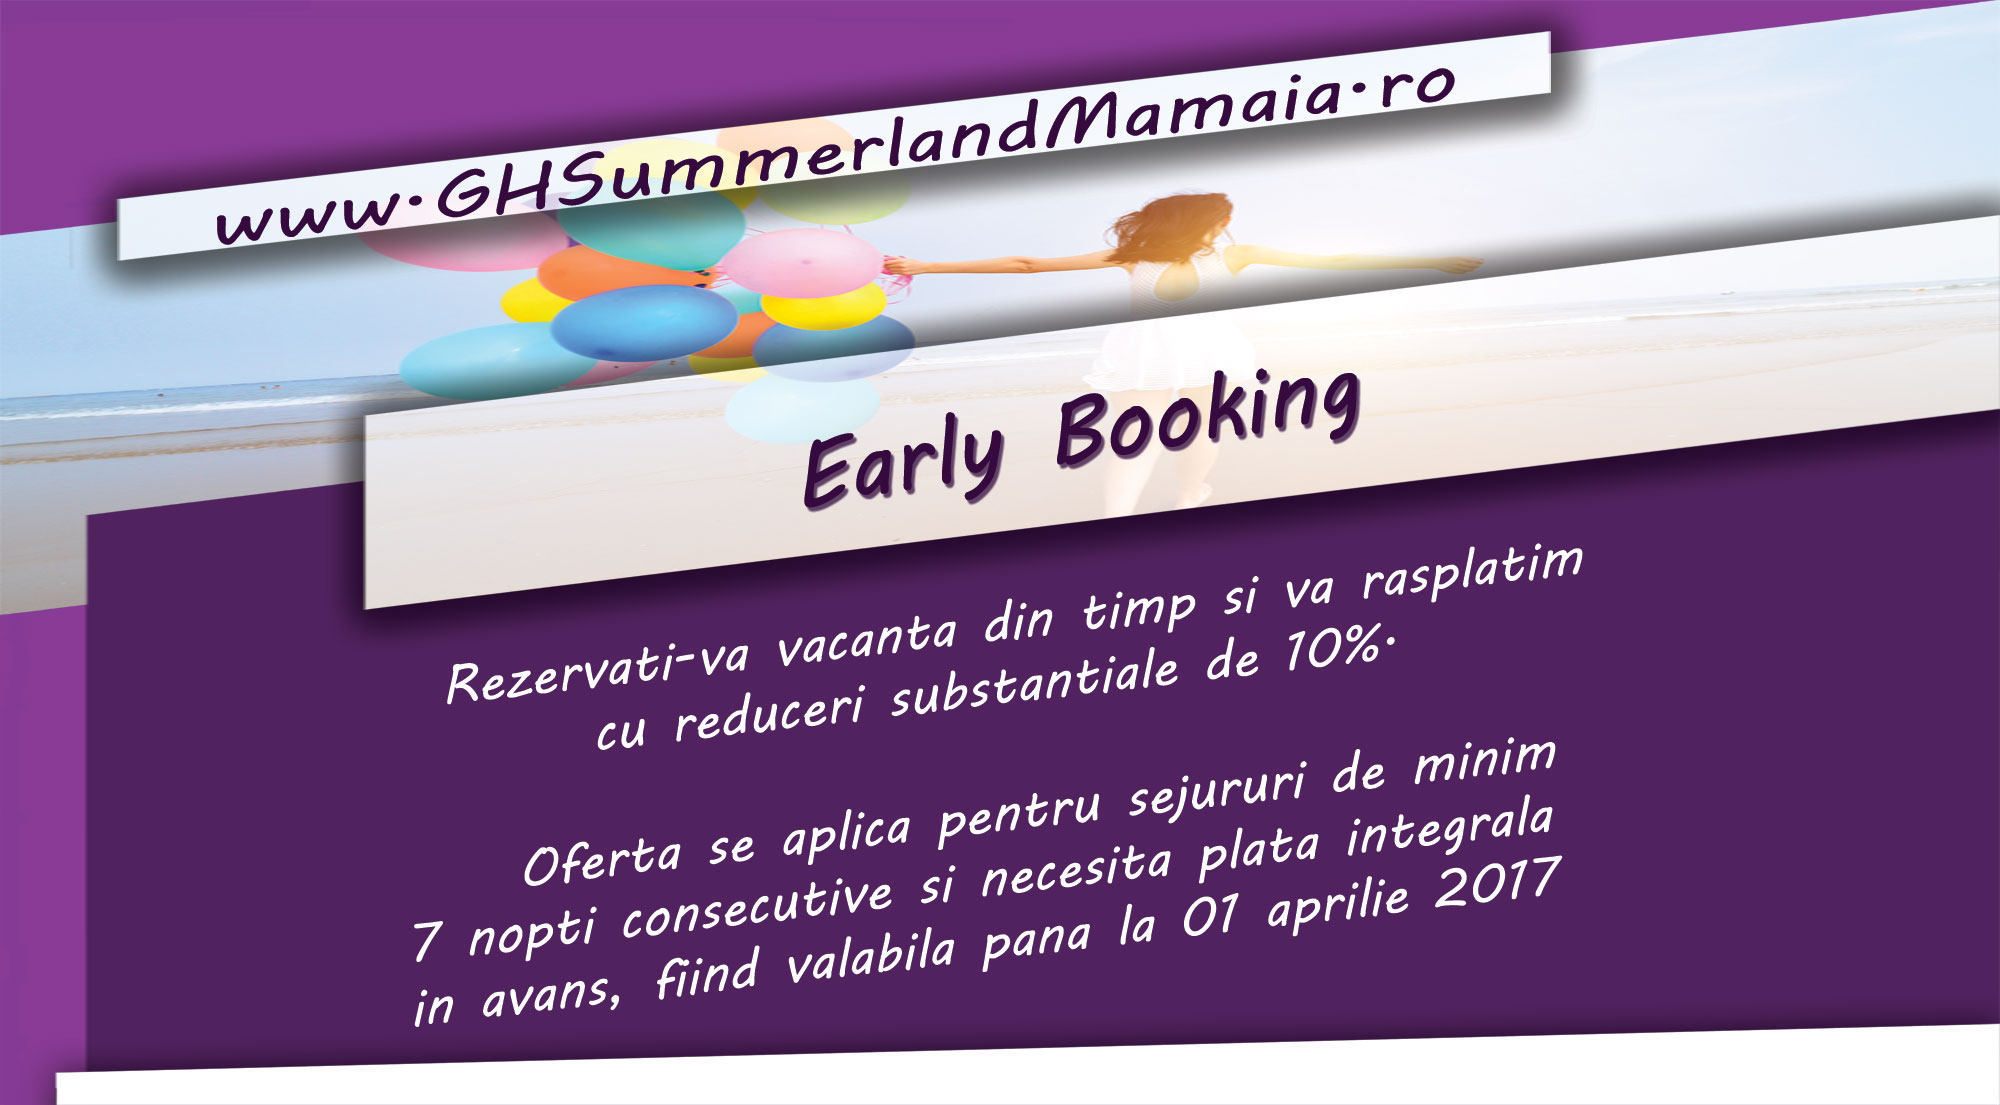 Oferta Earlybooking Summerland Mamaia